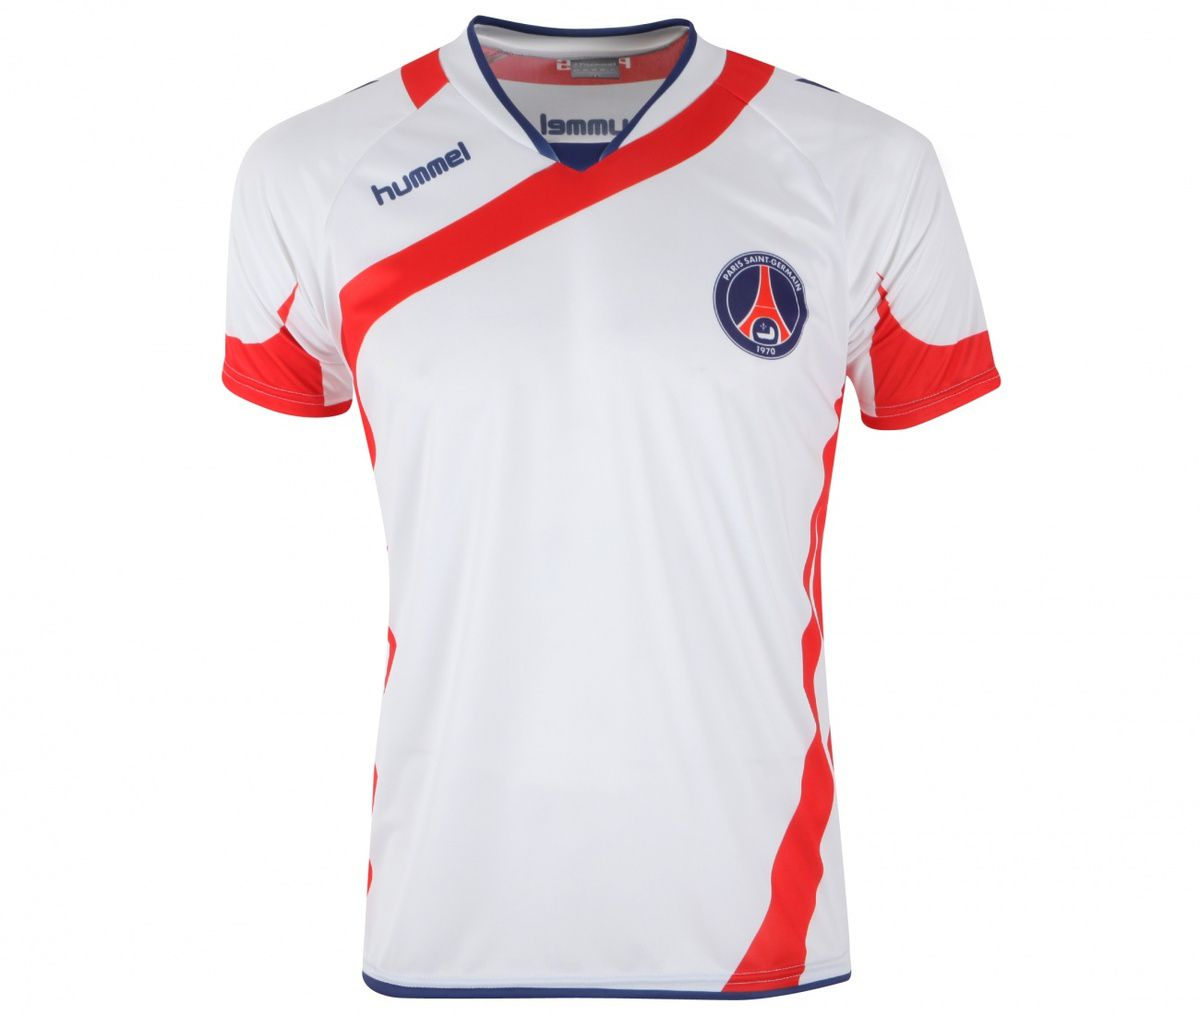 Maillot 2011/2012 PSG away